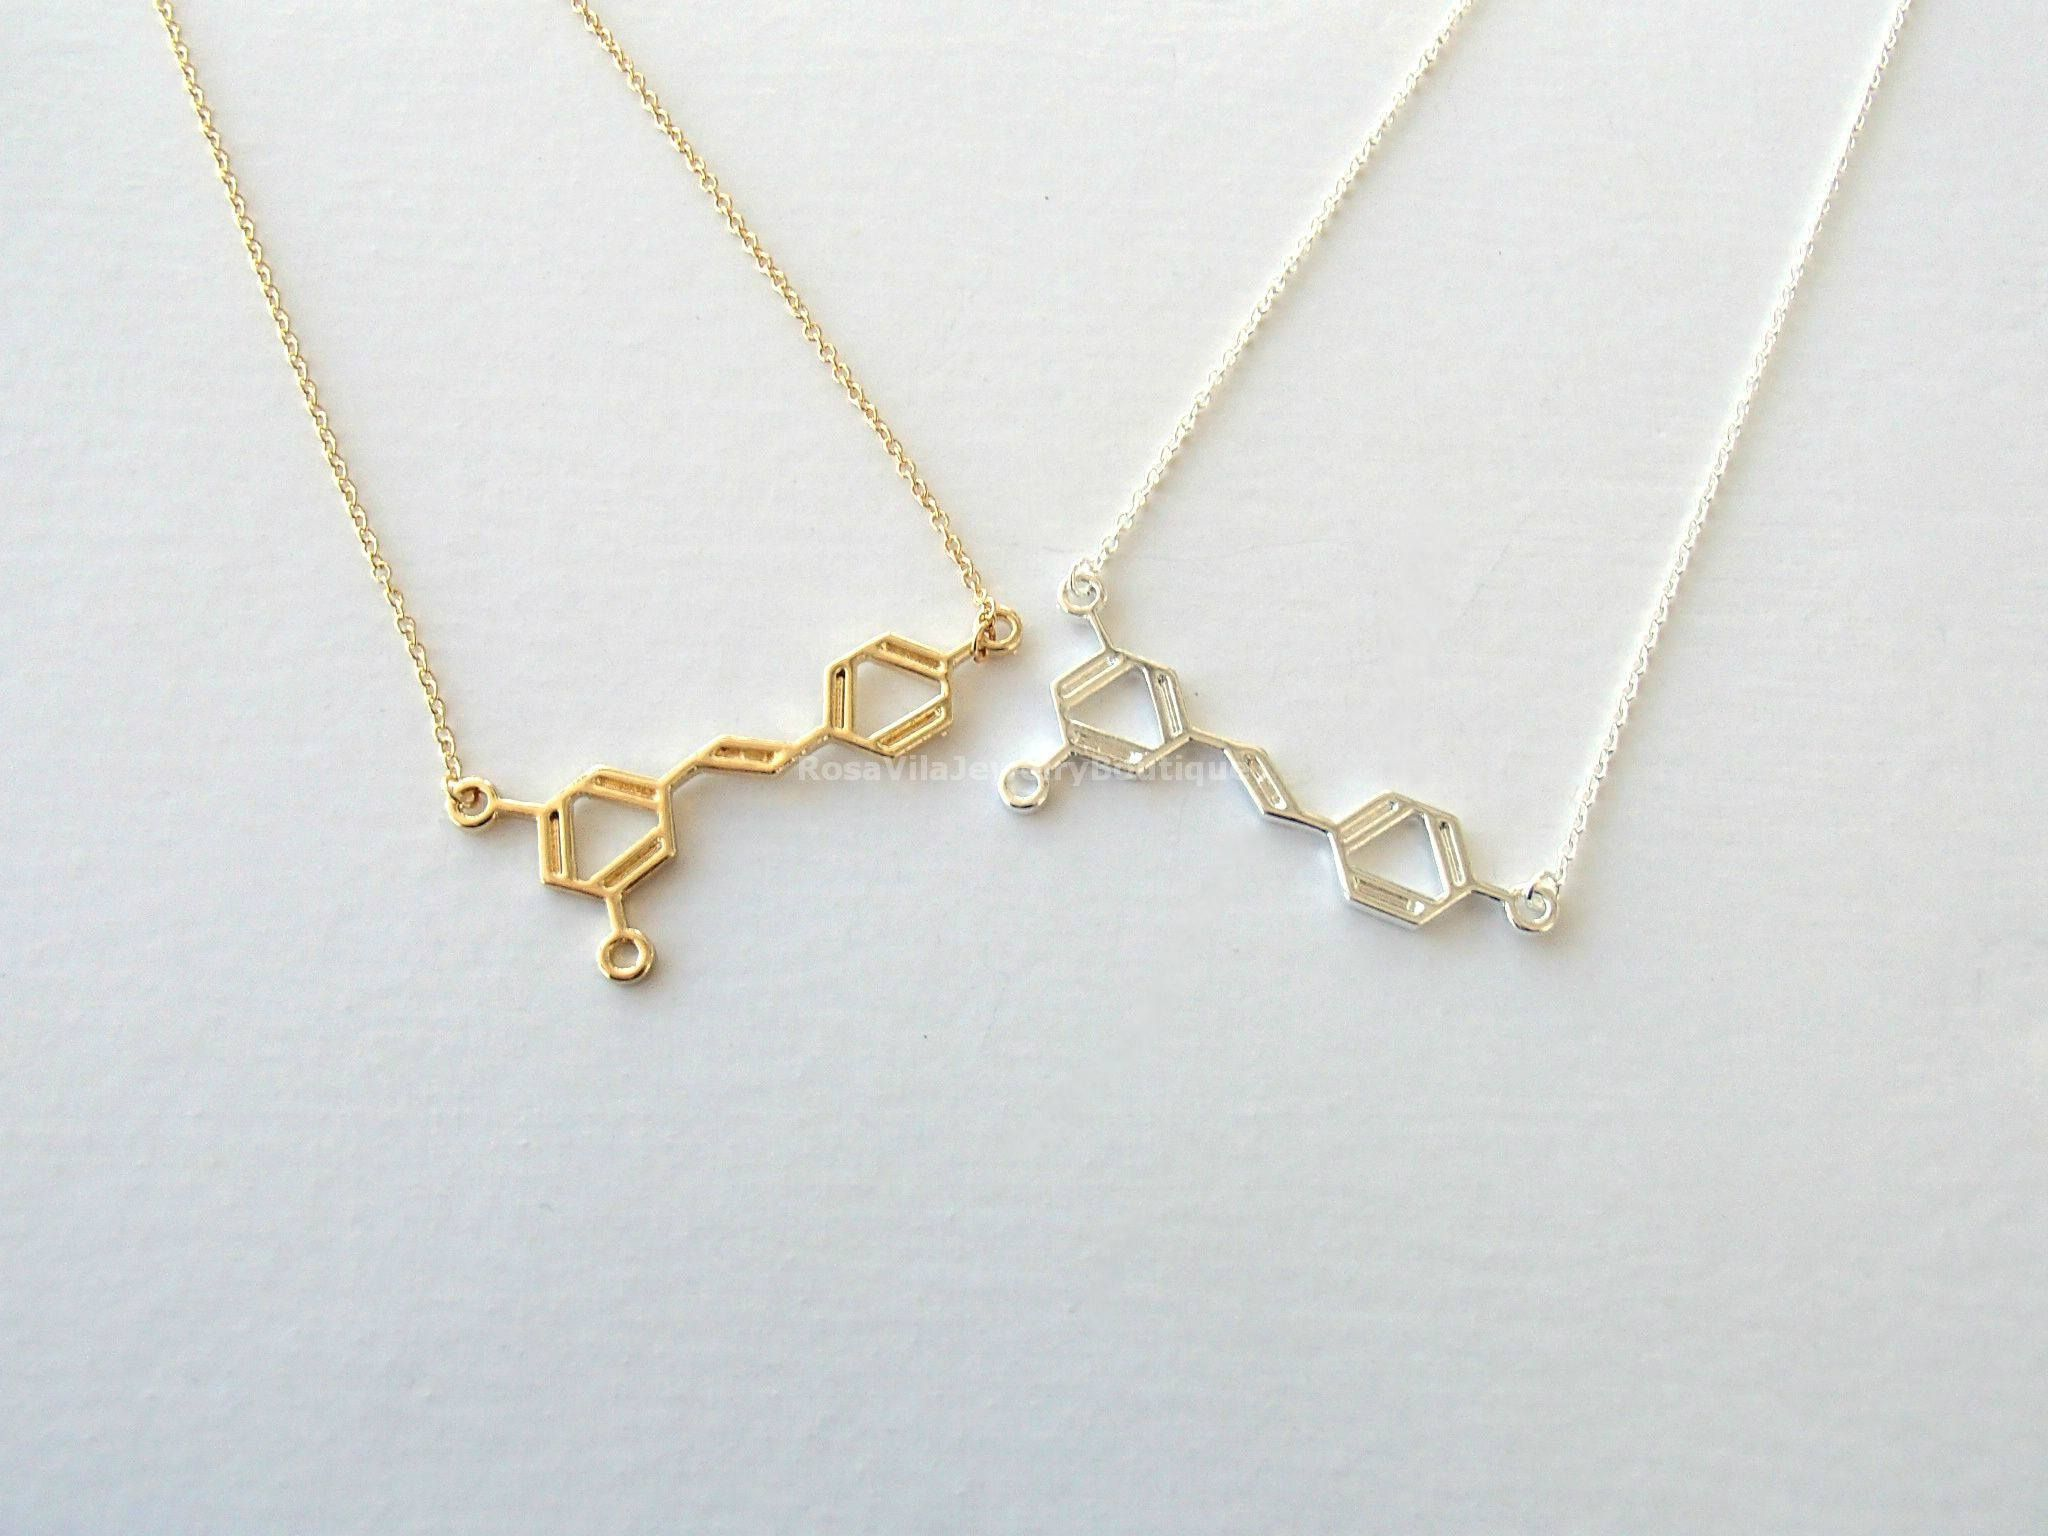 dna pendant indicative products present collections biology necklace